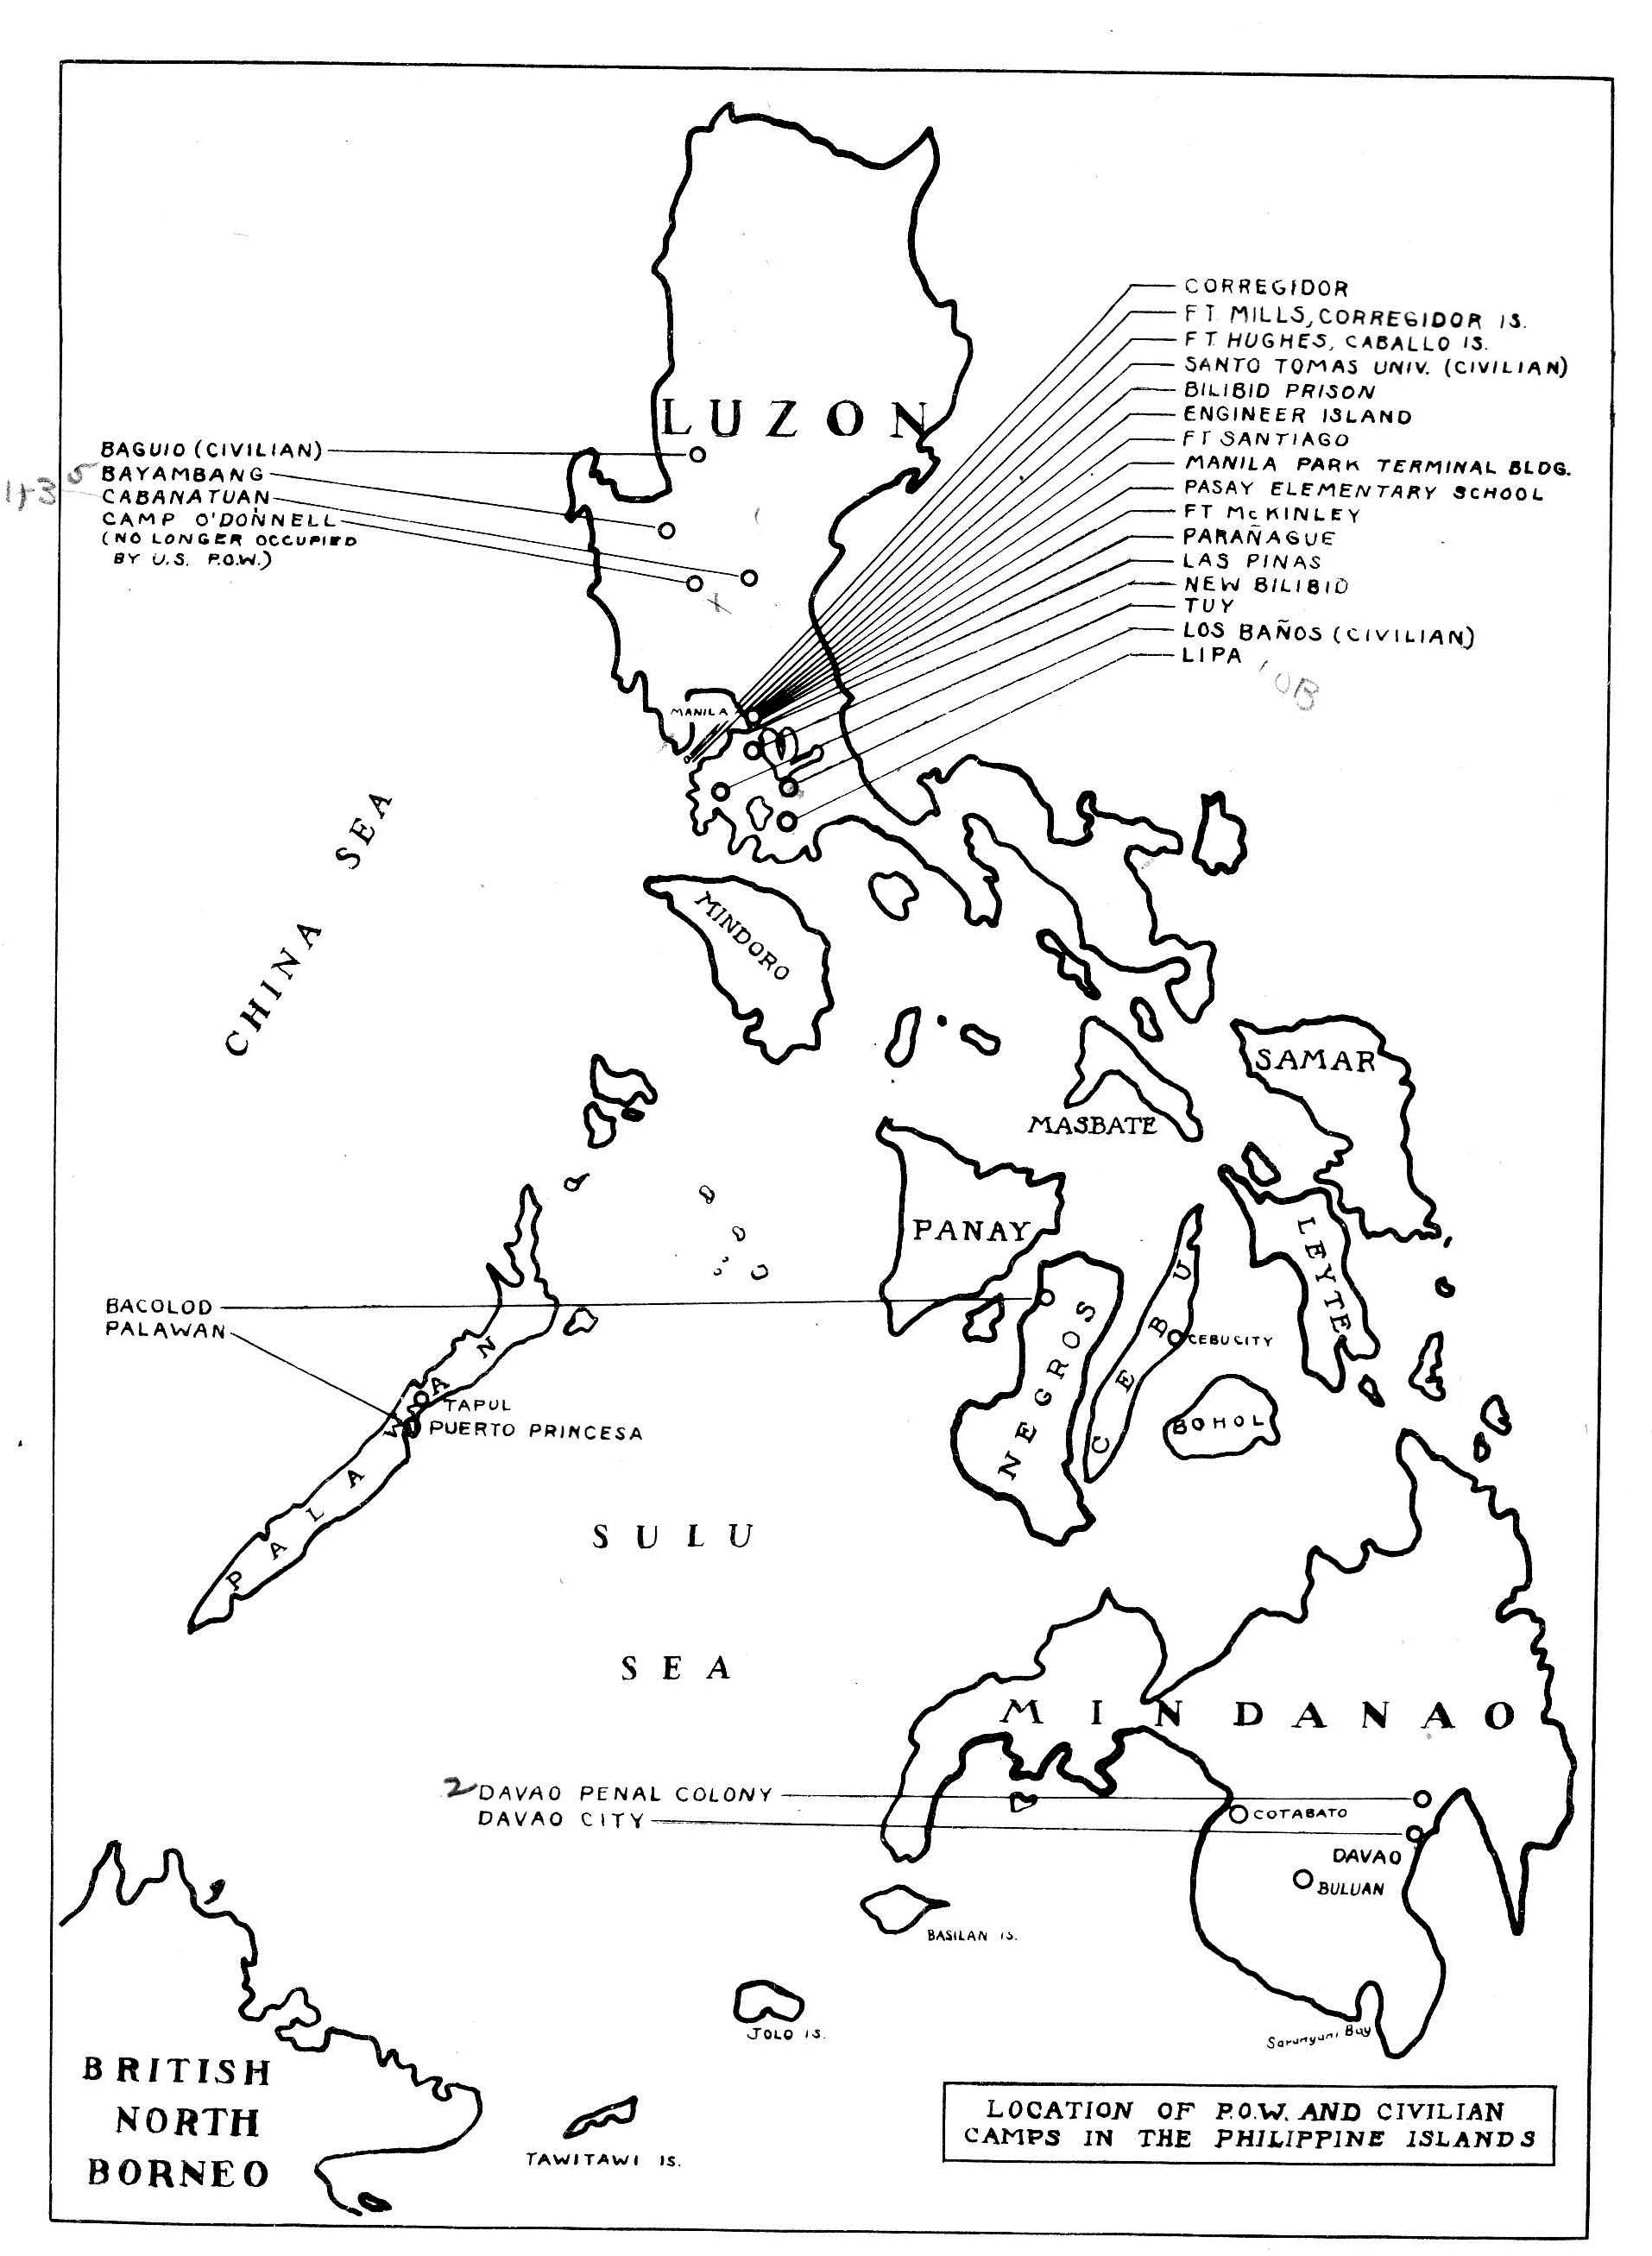 List Of Pow Camps In The Philippines